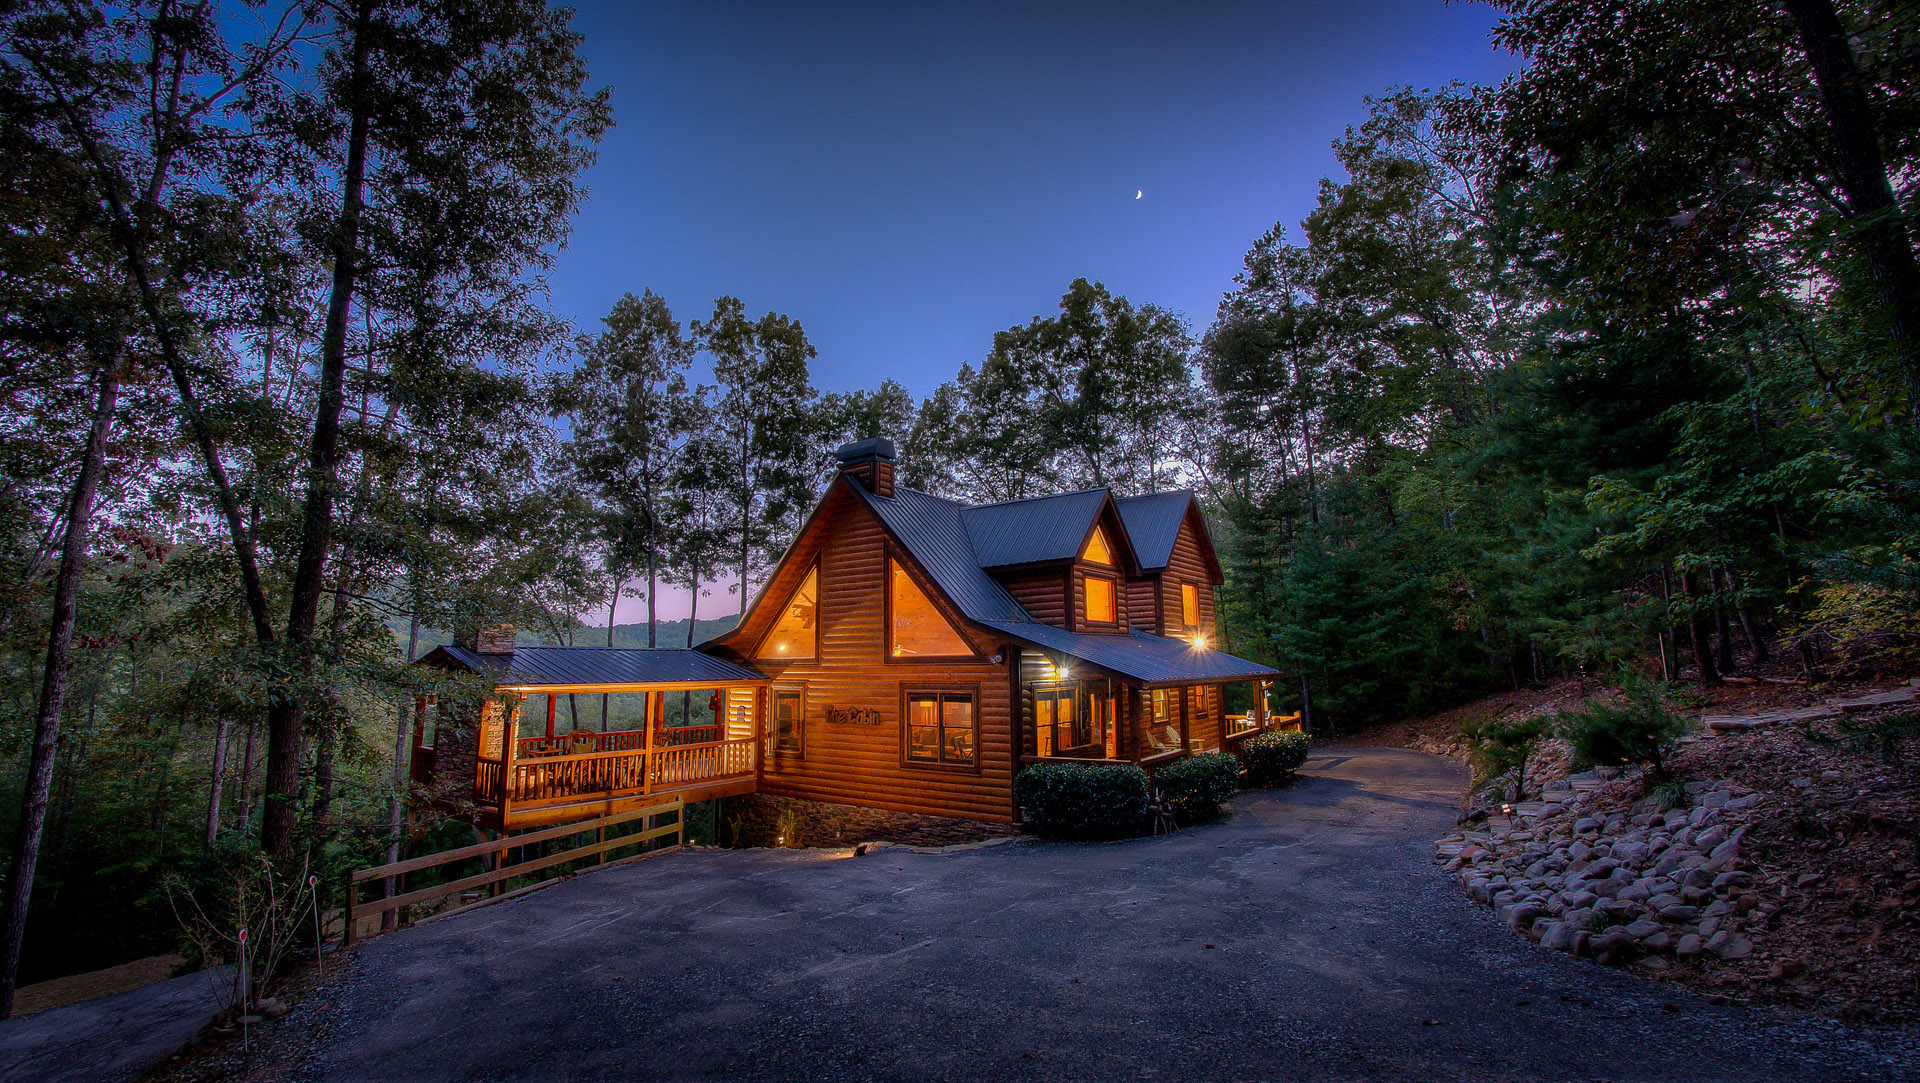 A cozy cabin in Blue Ridge, Georgia, glows warmly among trees and twilight sky.